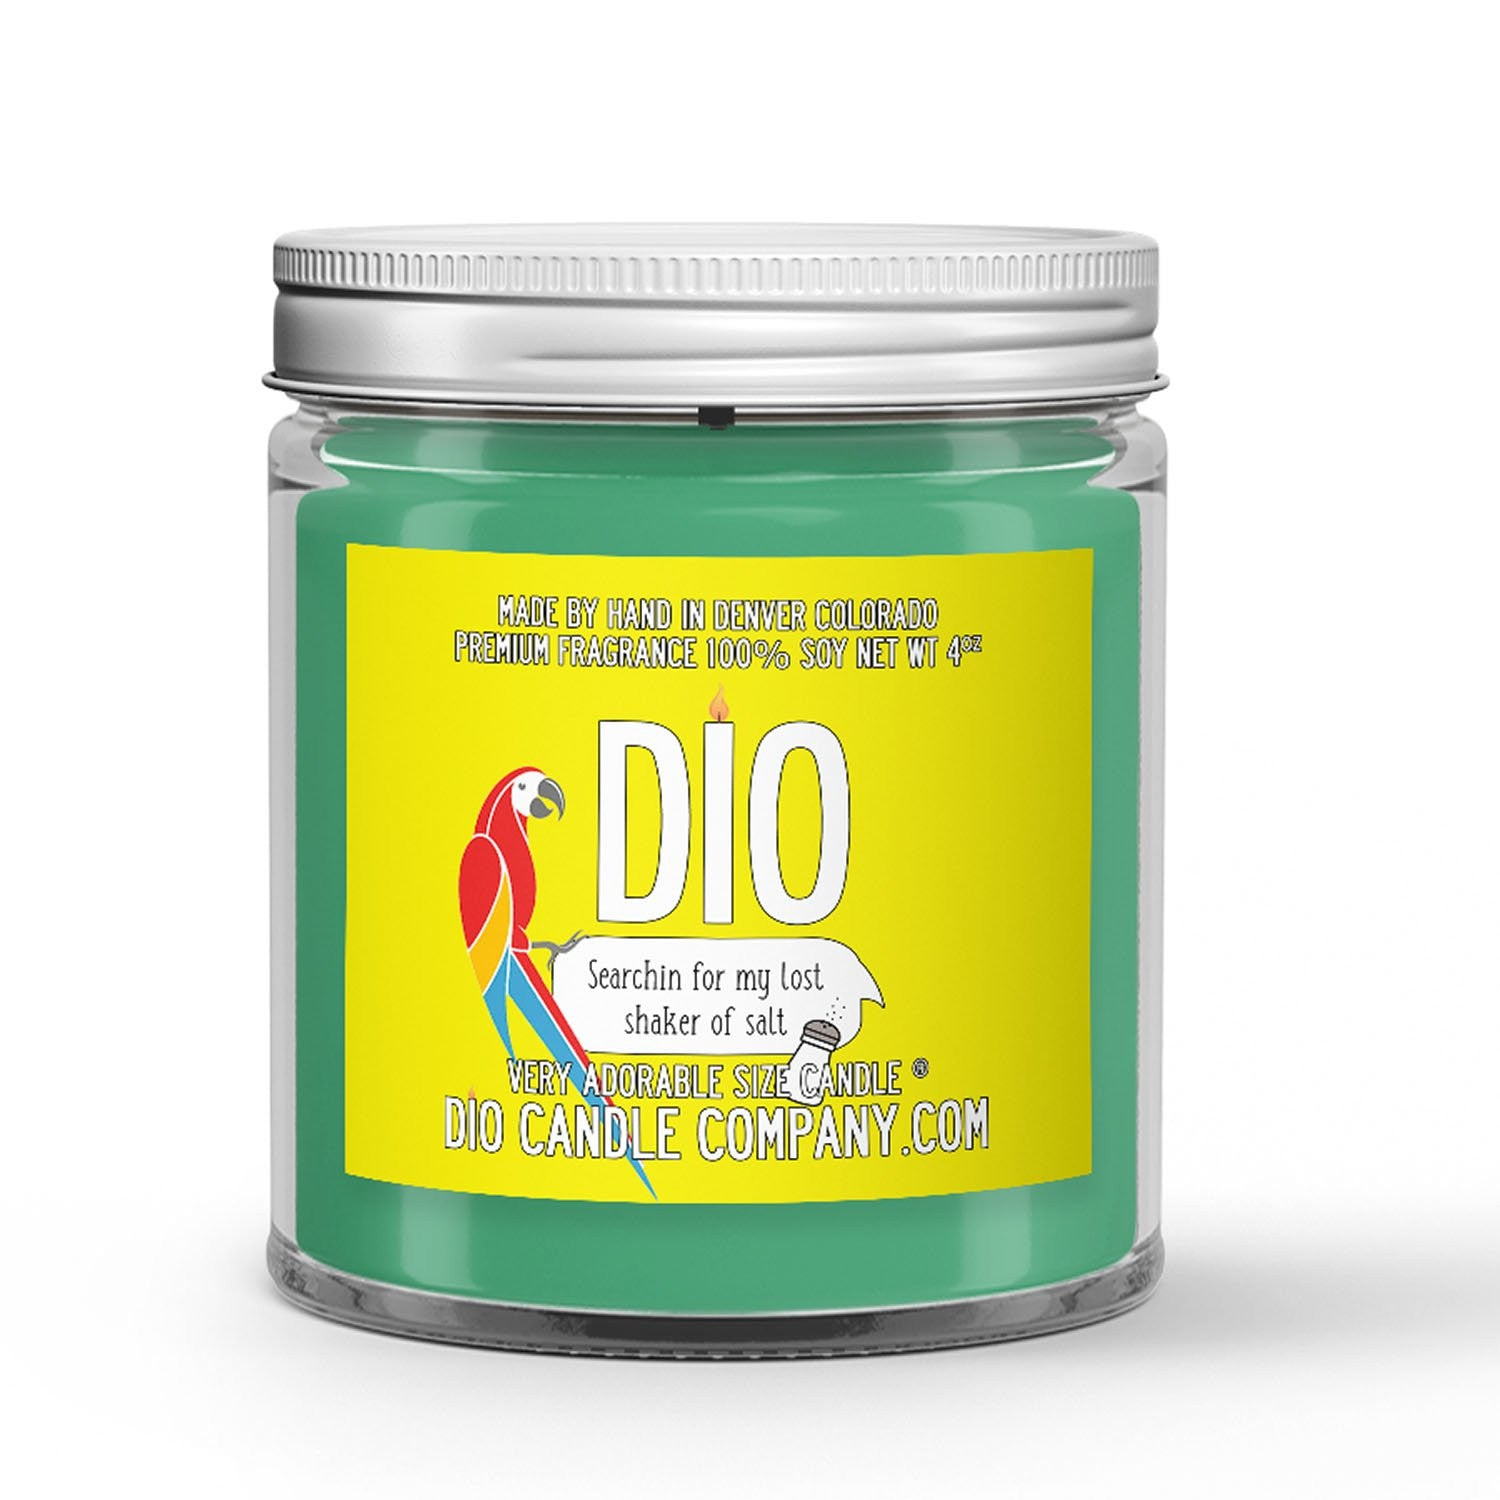 Lost Shaker of Salt Candle - Lime - Salt - 4oz Very Adorable Size Candle® - Dio Candle Company